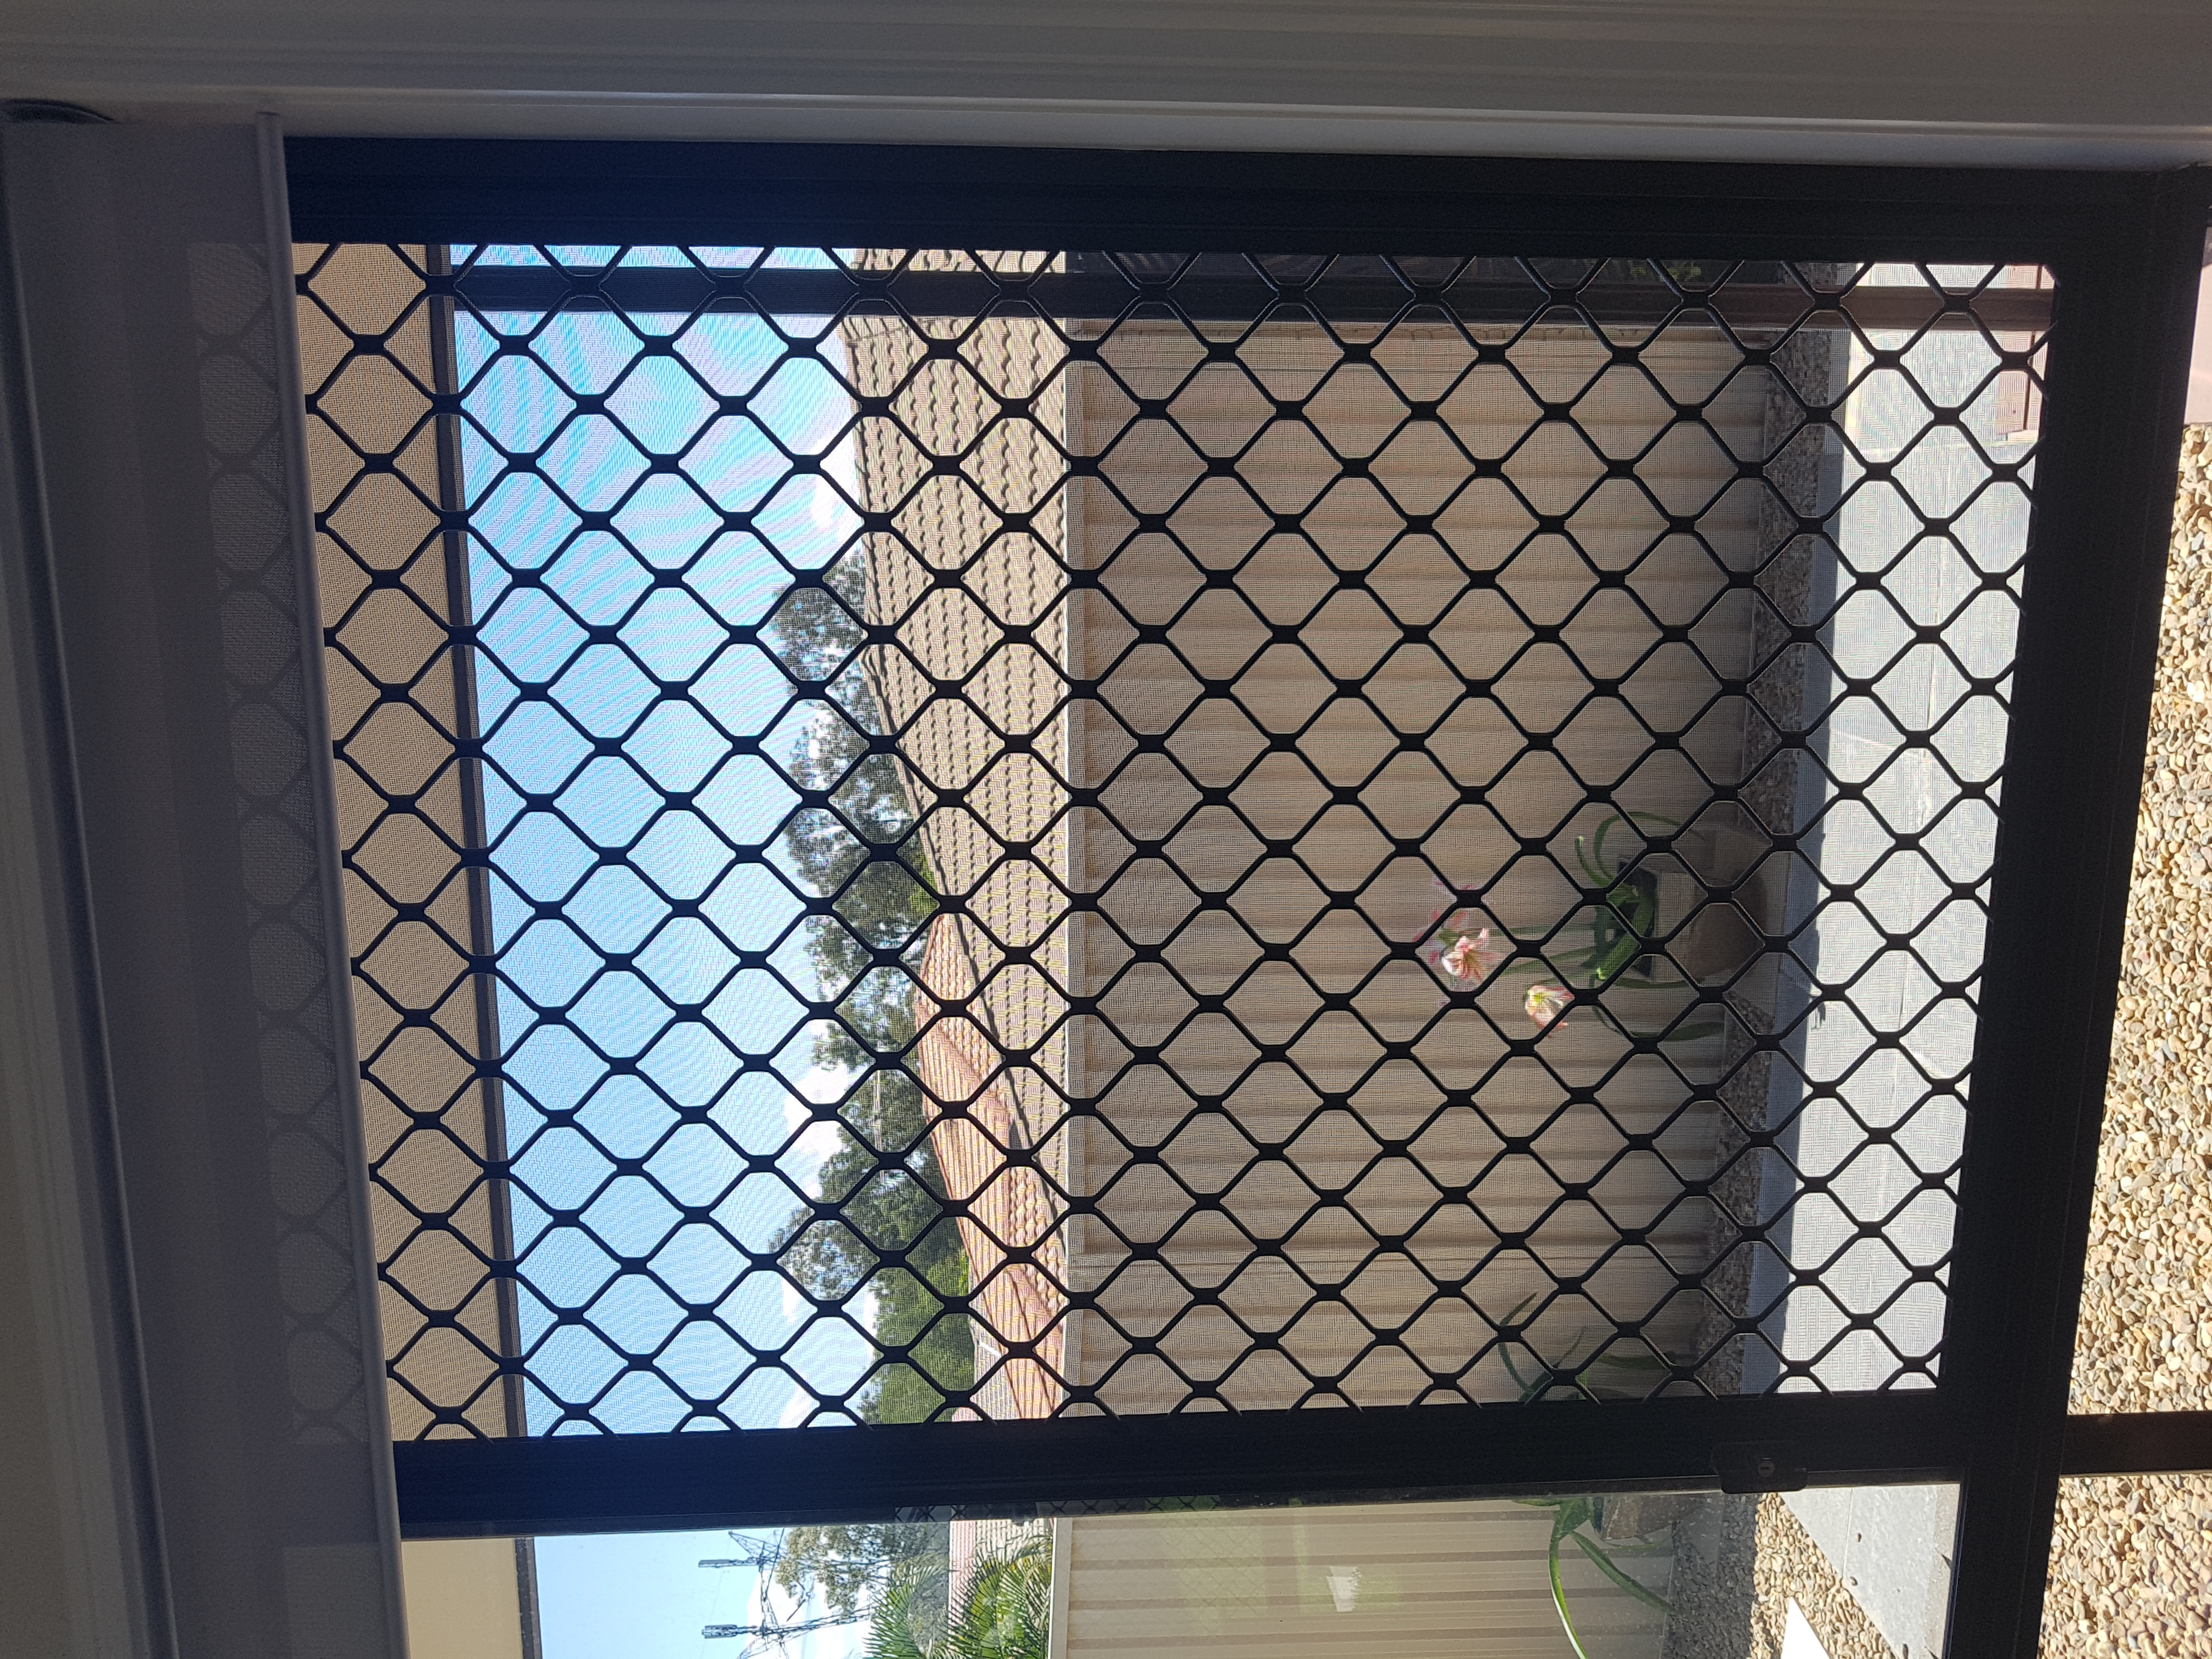 Diamond grille security screens can be remeshed and refurbished